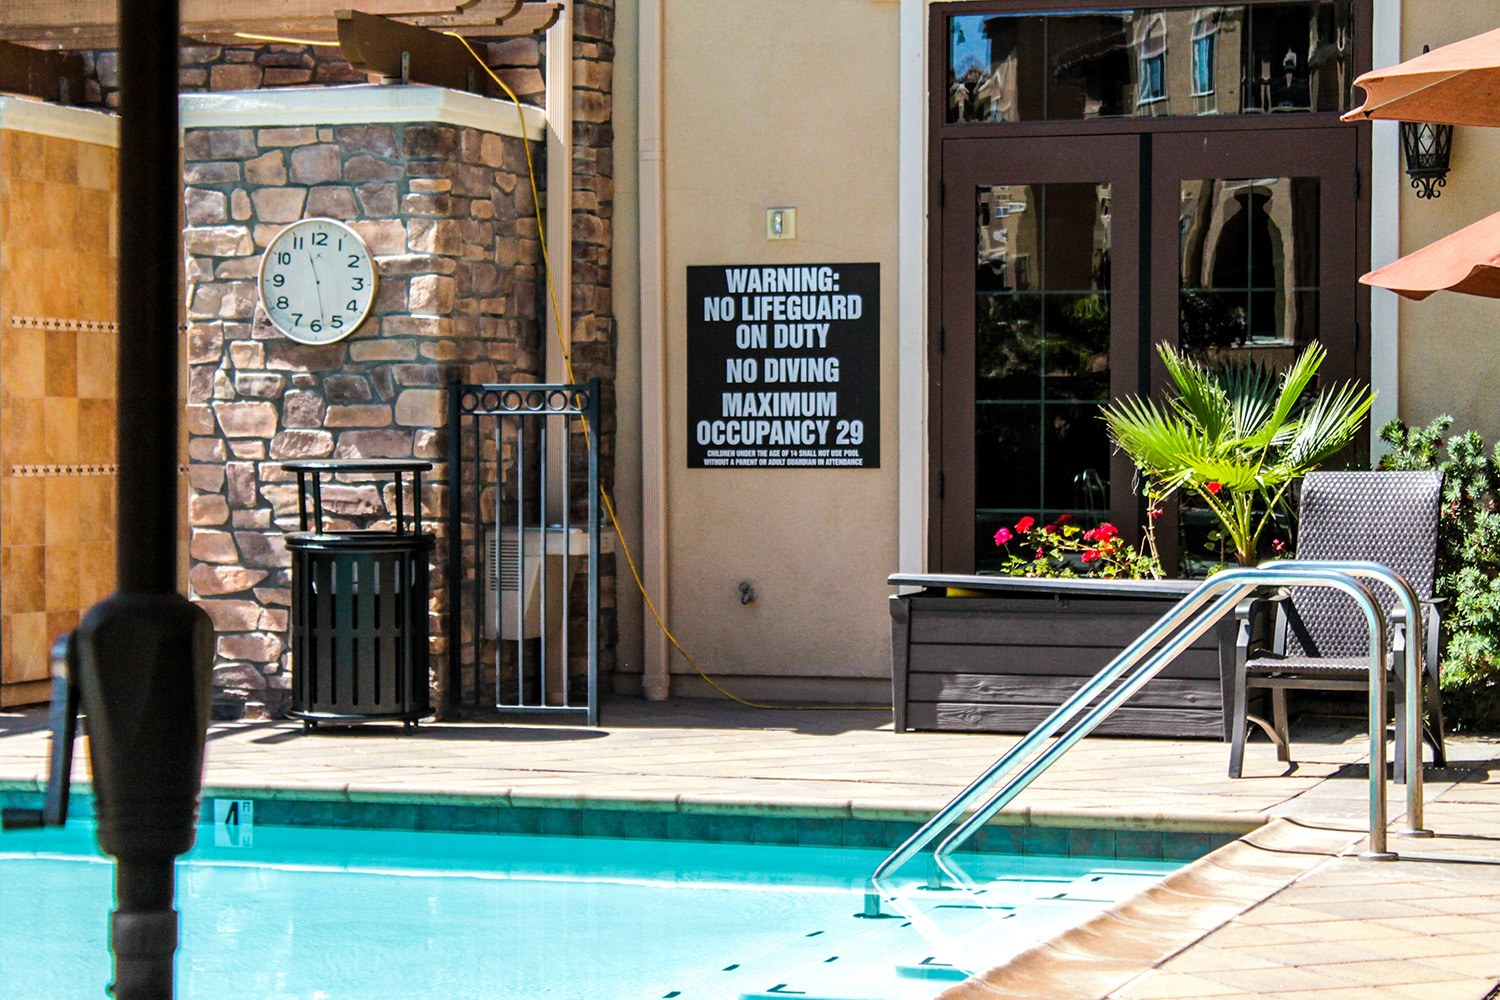 300-pacifica-pool-signage-2